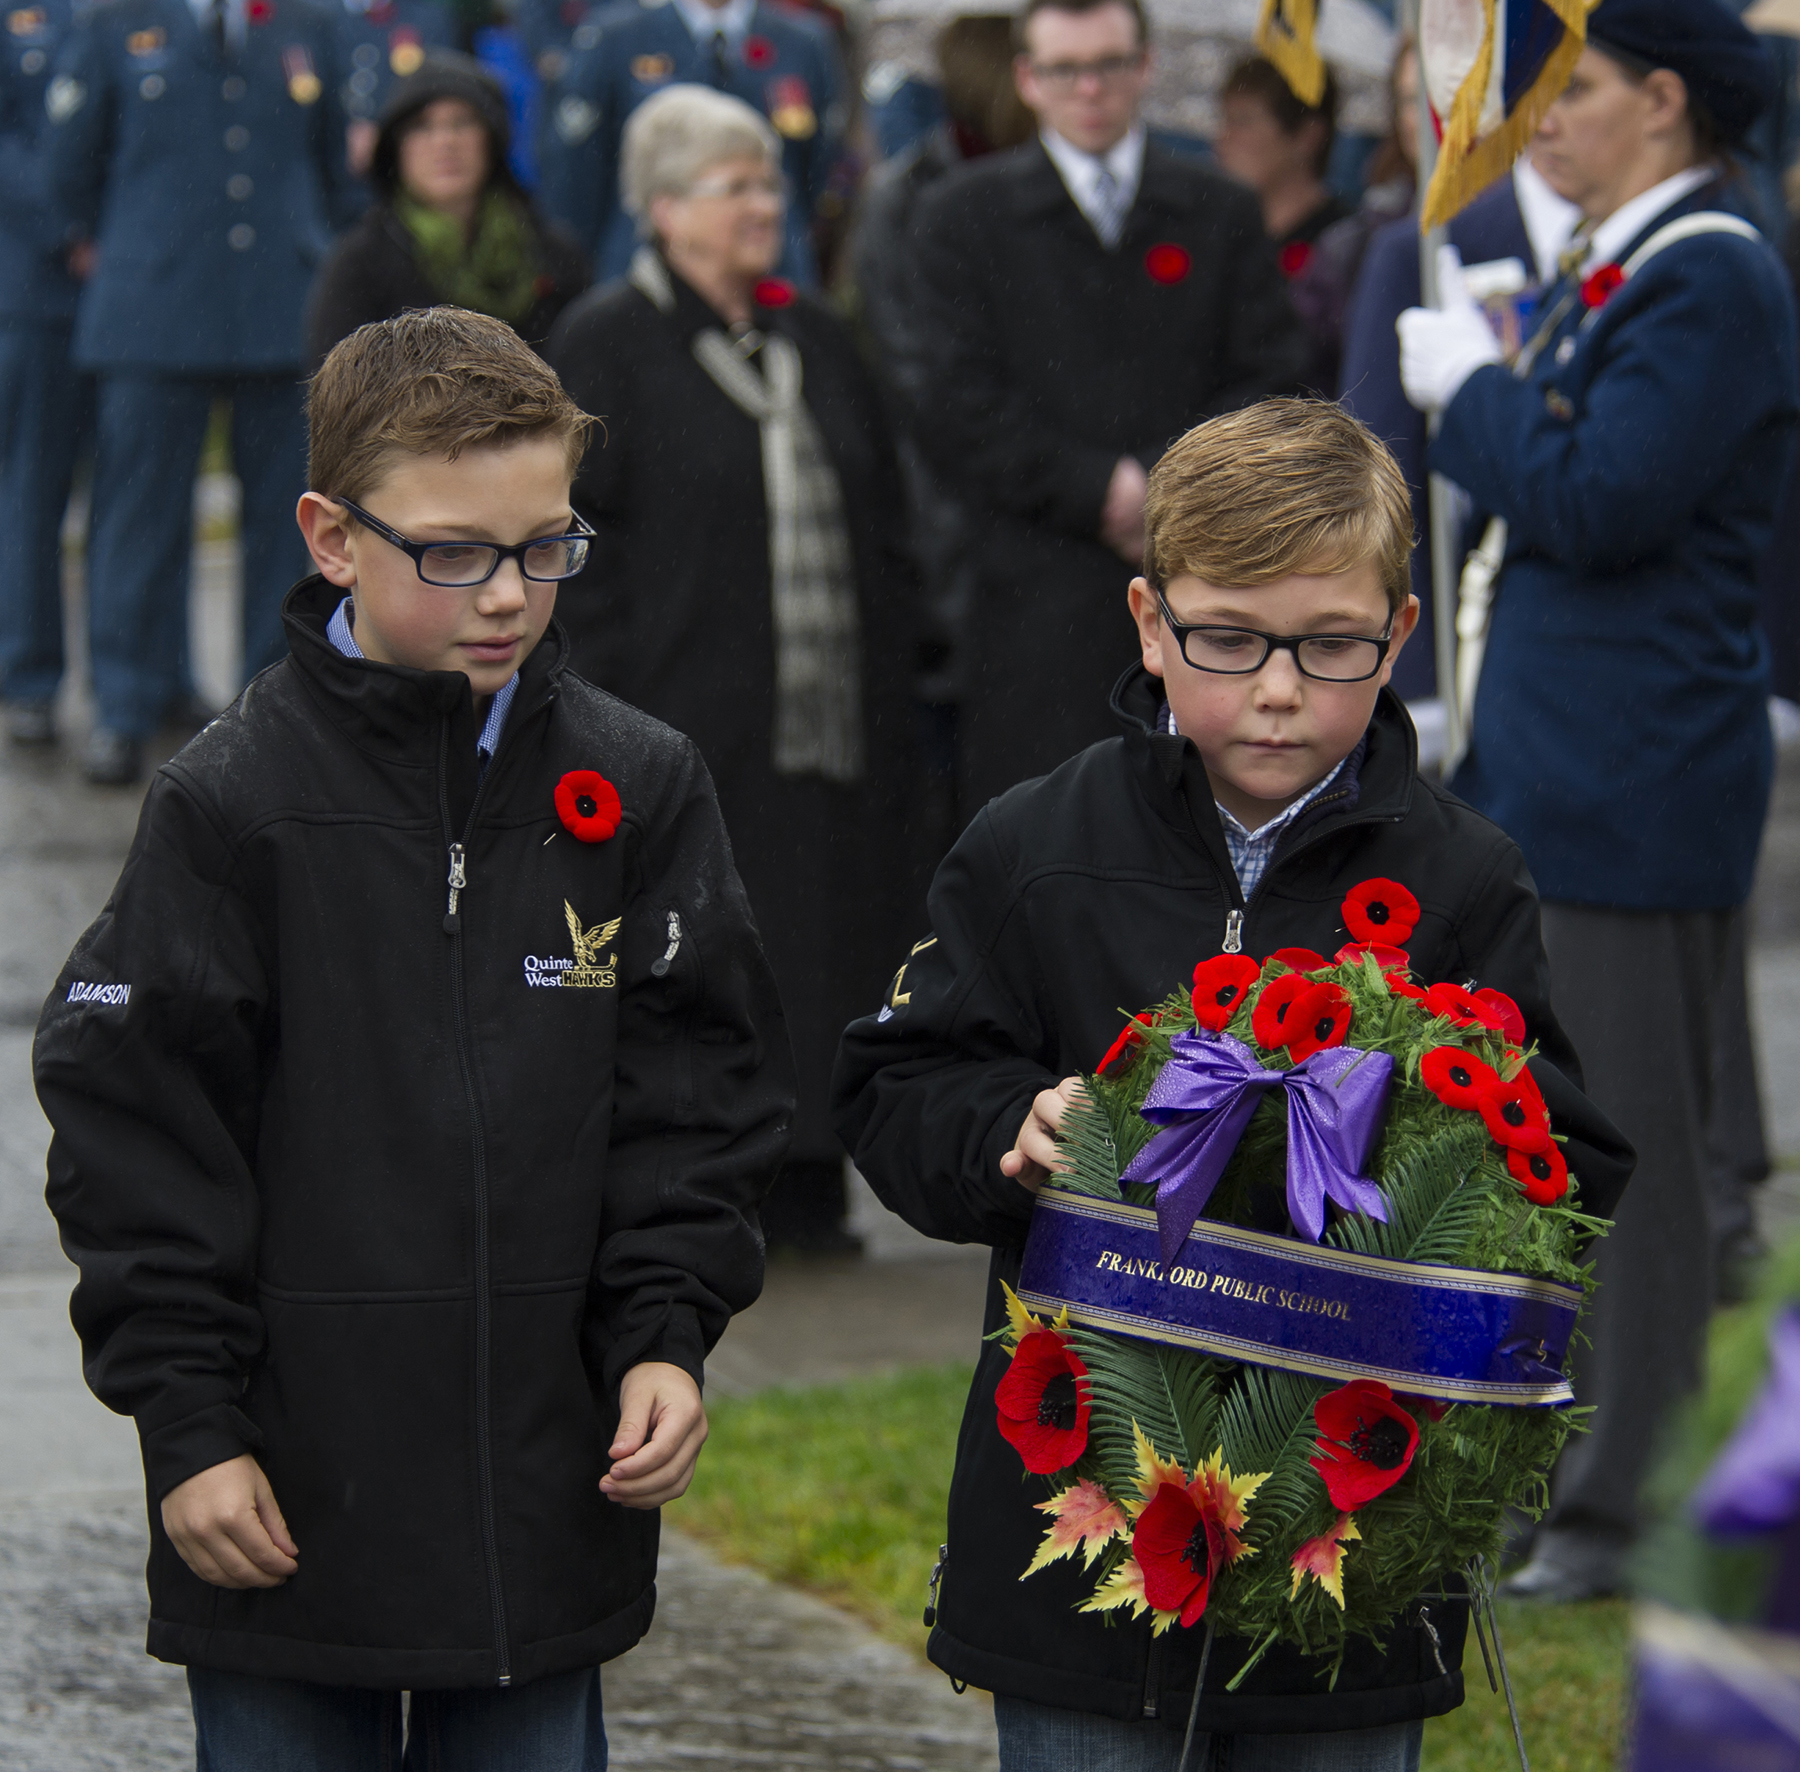 The Adamson brothers approach the cenotaph to place a wreath on behalf of Frankford Public School at the Remembrance Day Ceremony in Frankford, Ontario, on November 11, 2015. PHOTO: Aviator Ryan Moulton